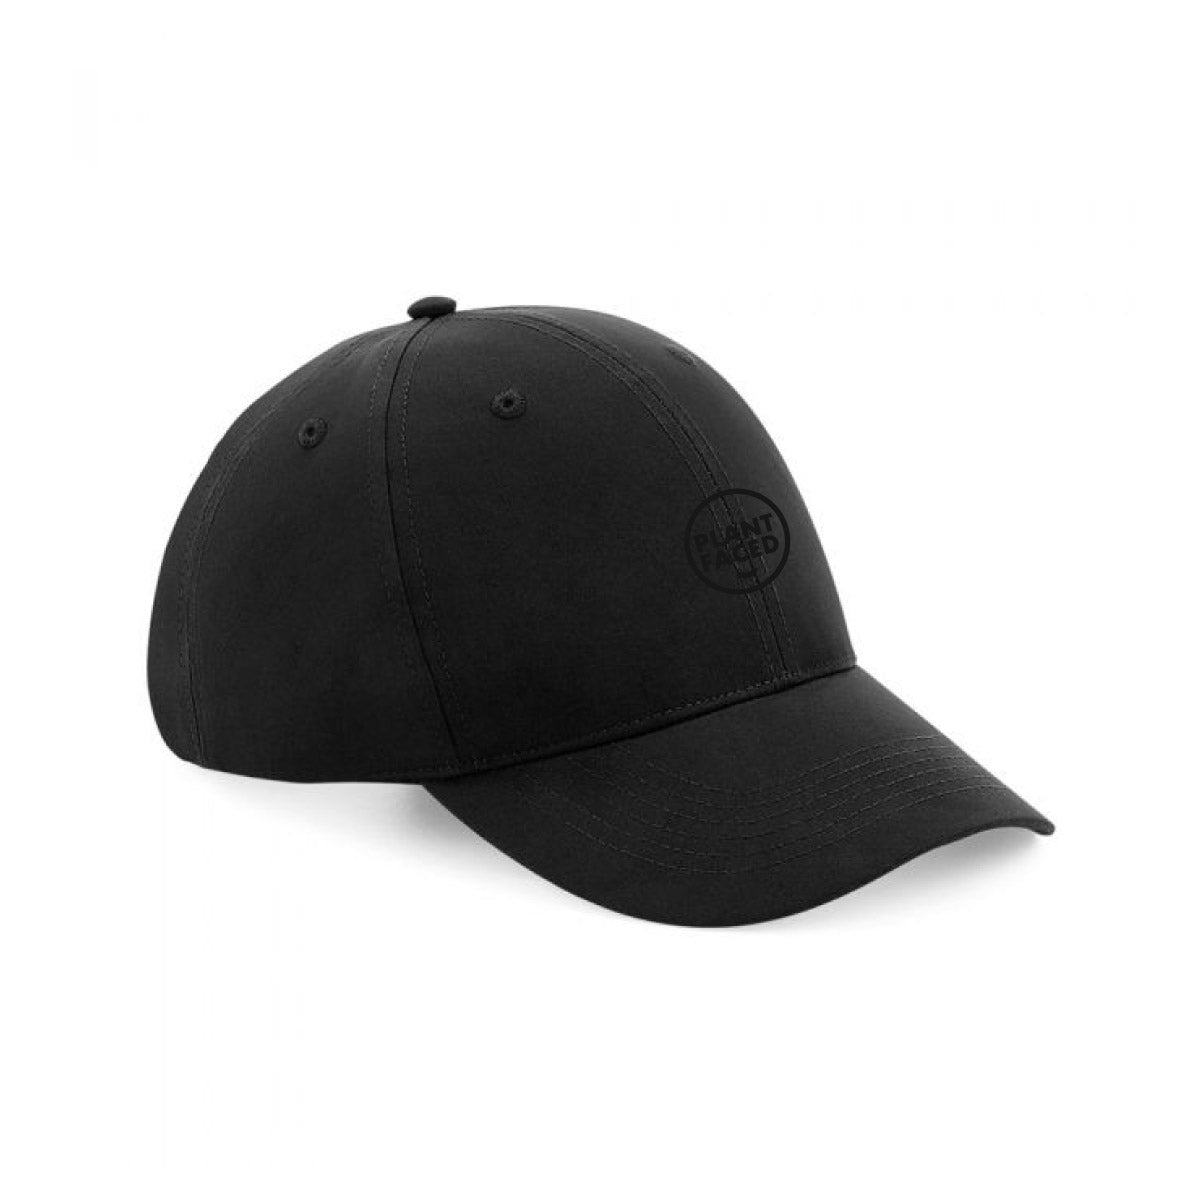 Plant Faced RECYCLED Dad Hat - Black Out